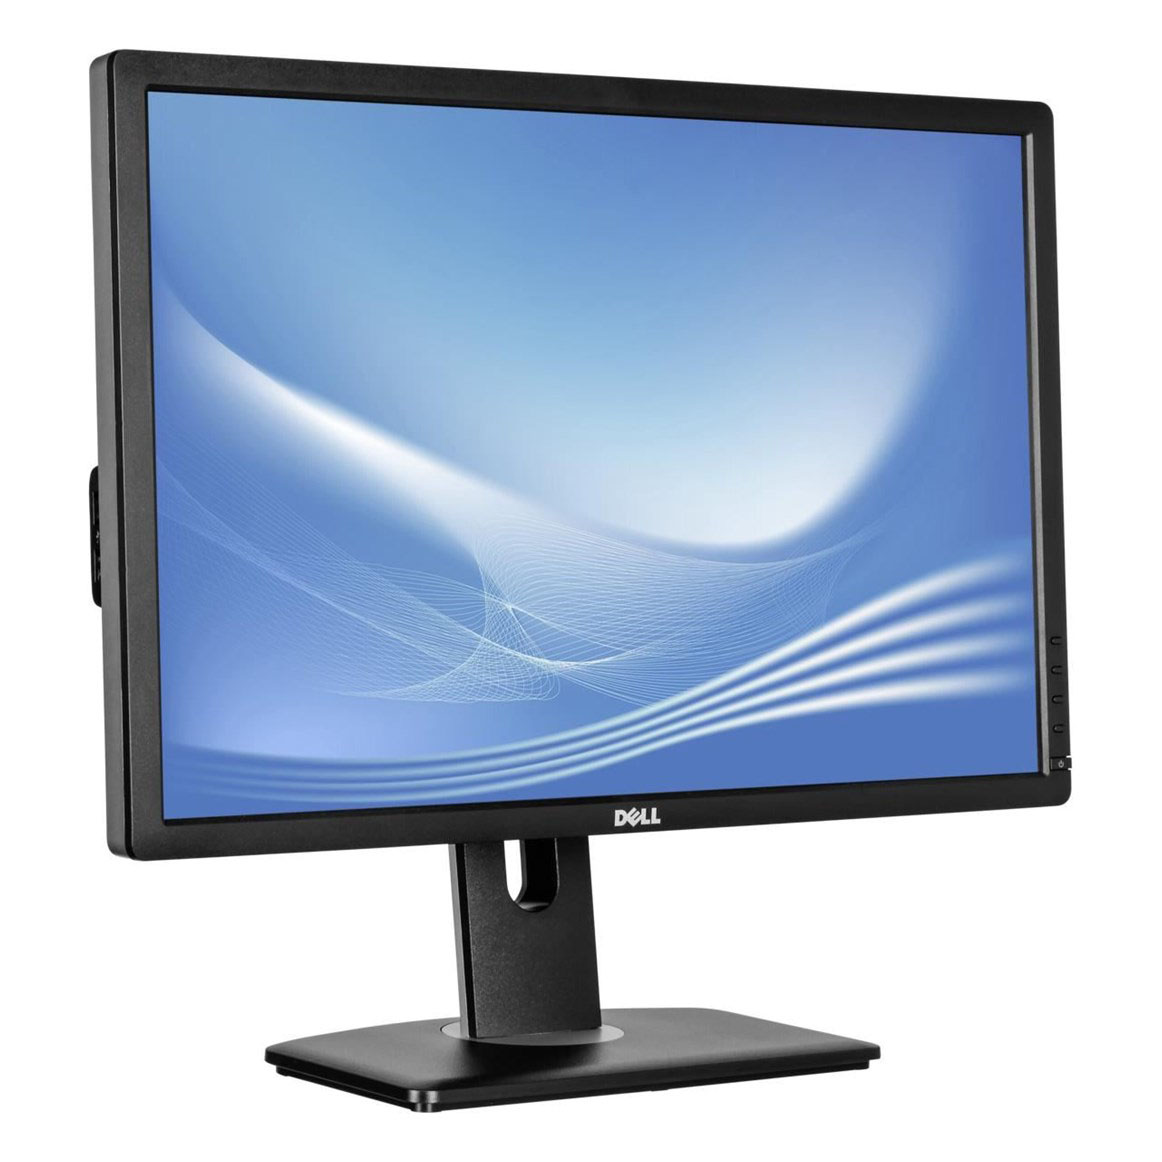 Dell UltraSharp U2412M LED IPS